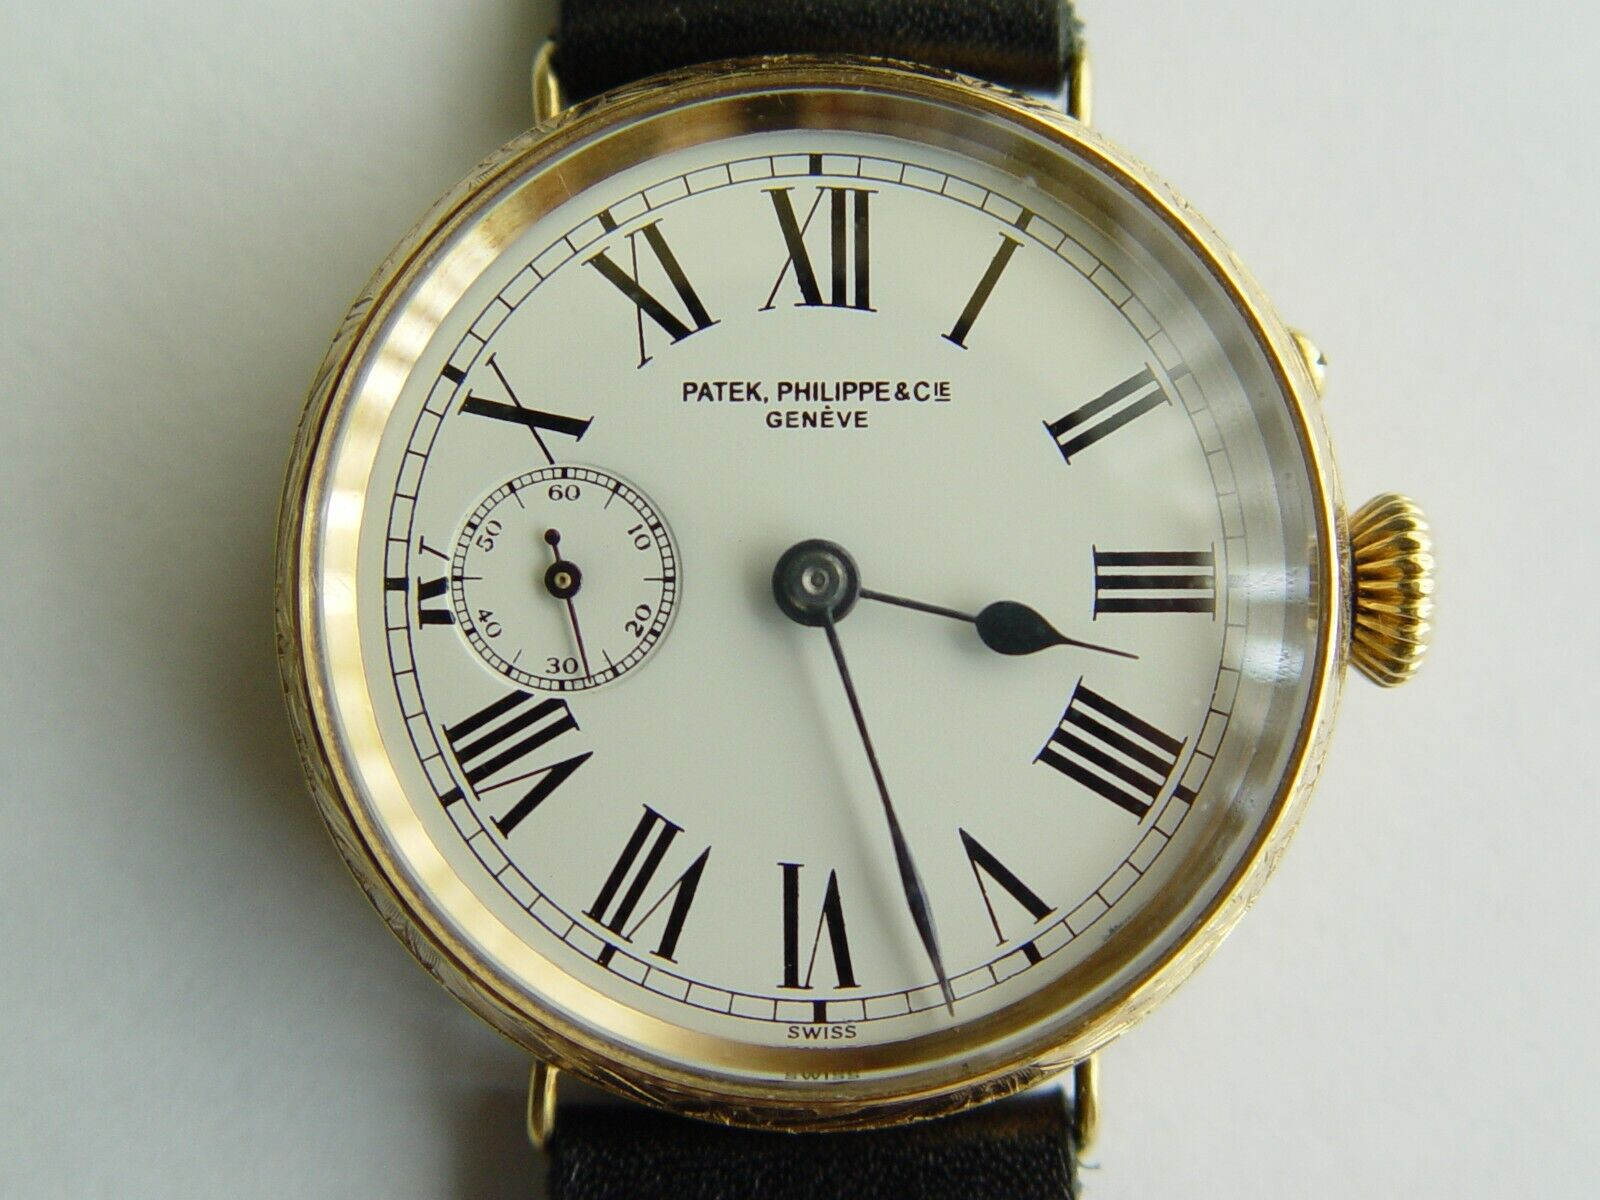 Antique 18k solid gold men's Patek Philippe watch 15 jewel movement - watch picture 1